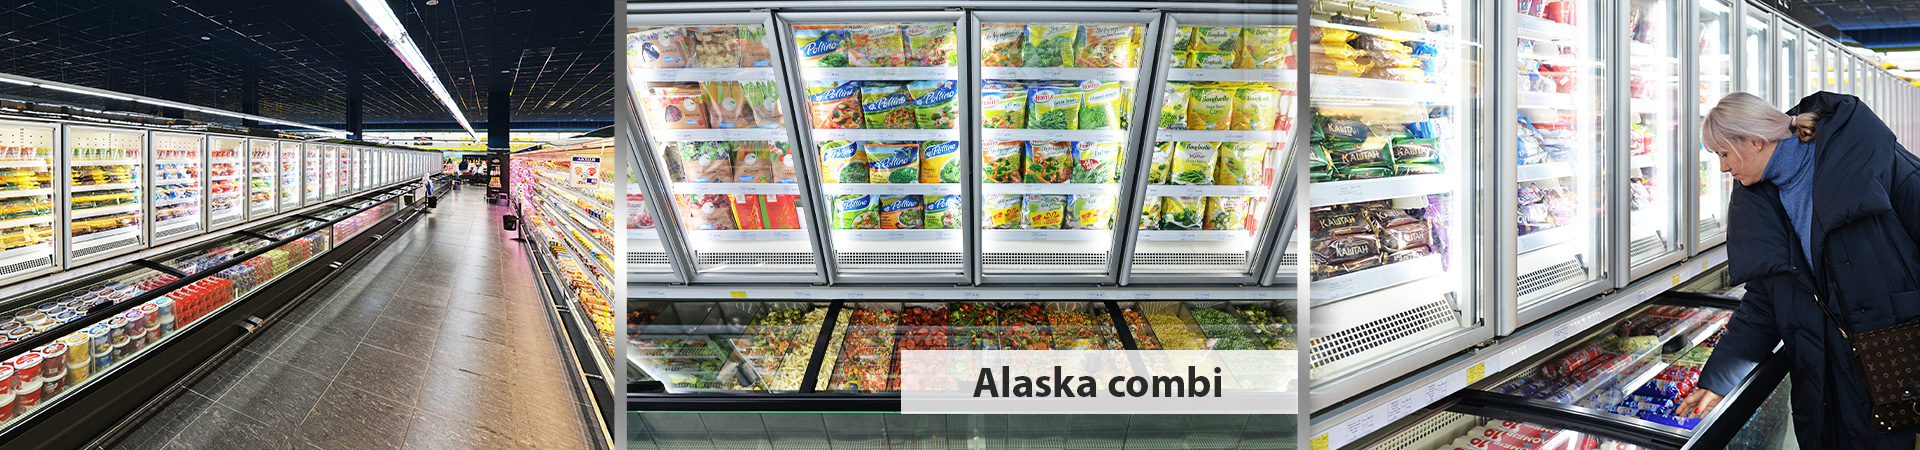 Frozen foods units Alaska combi